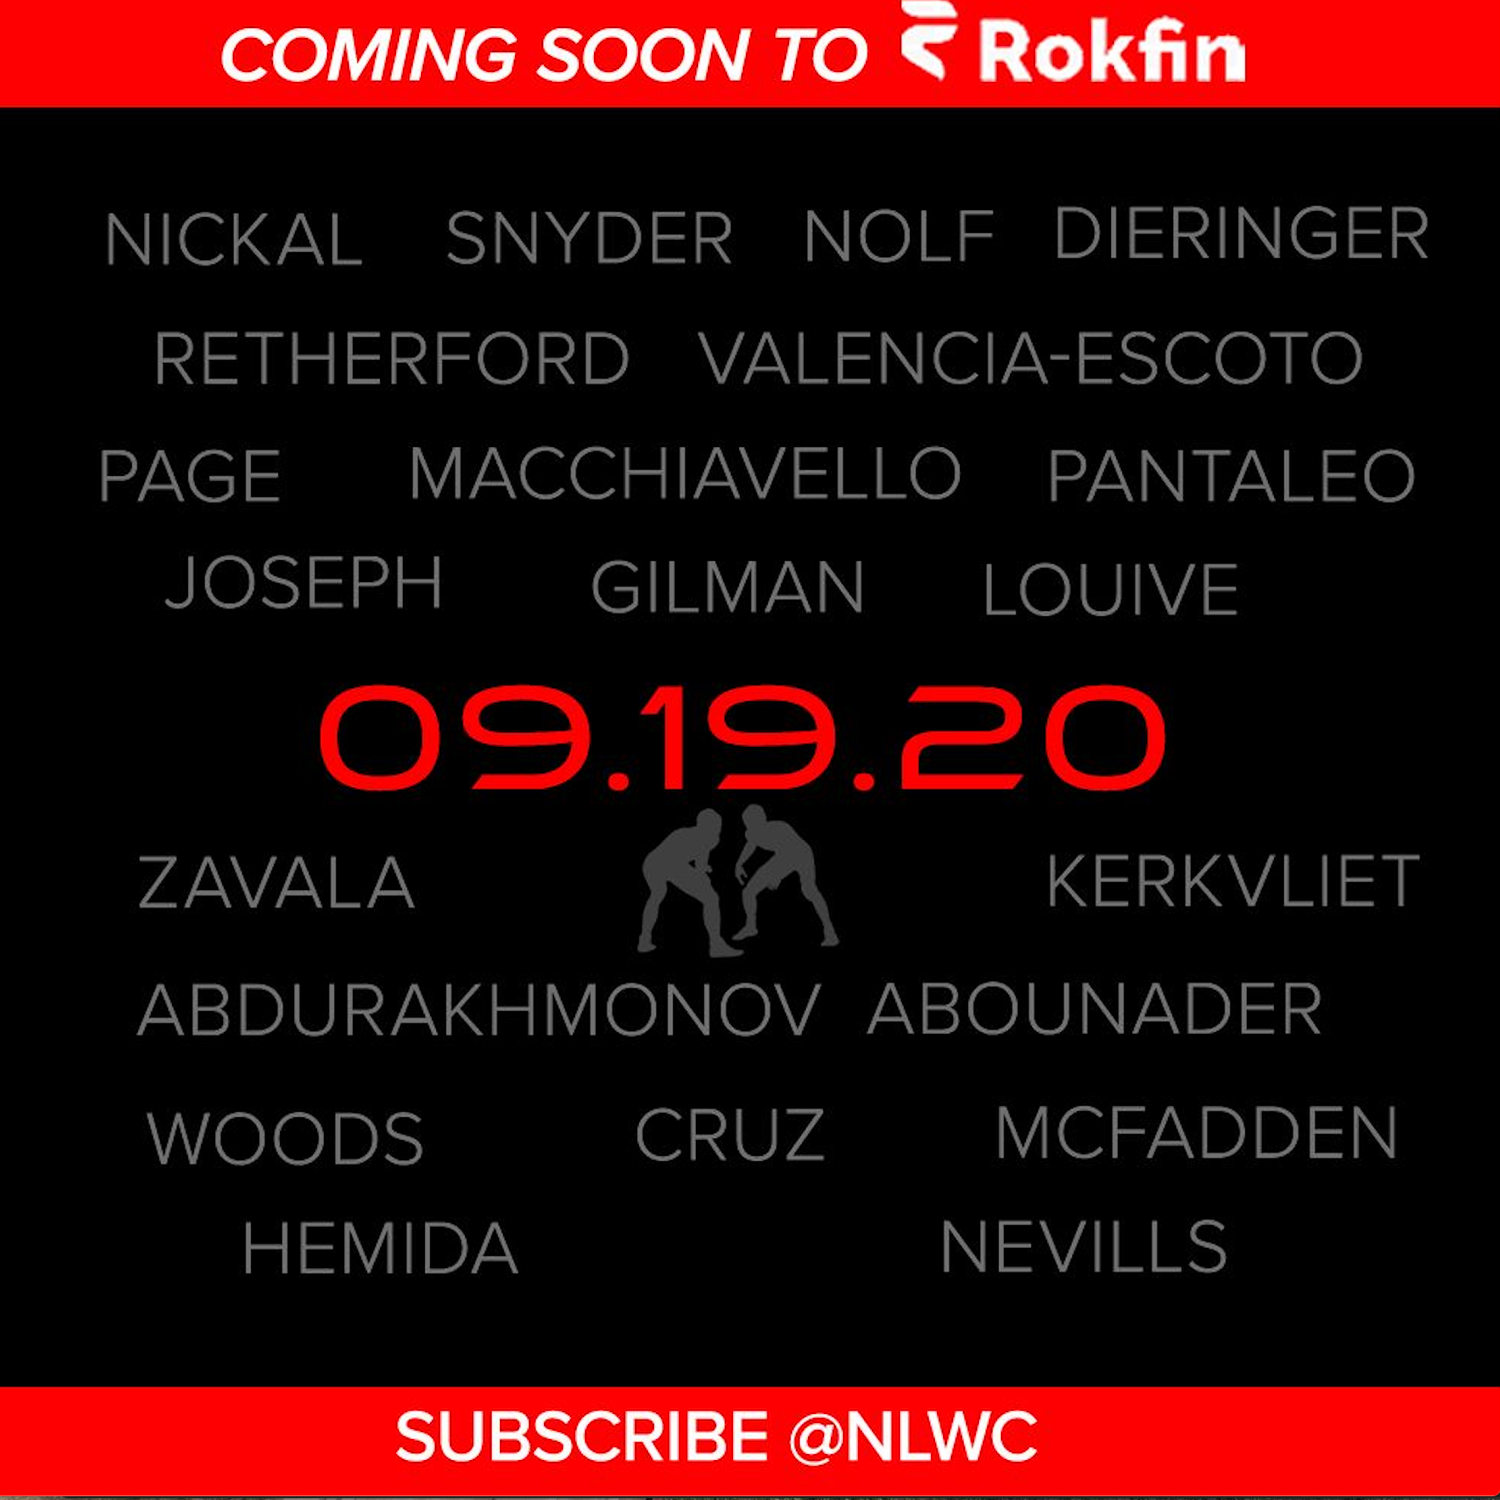 NLWC Set to Host Freestyle Event Live On Rokfin September 19